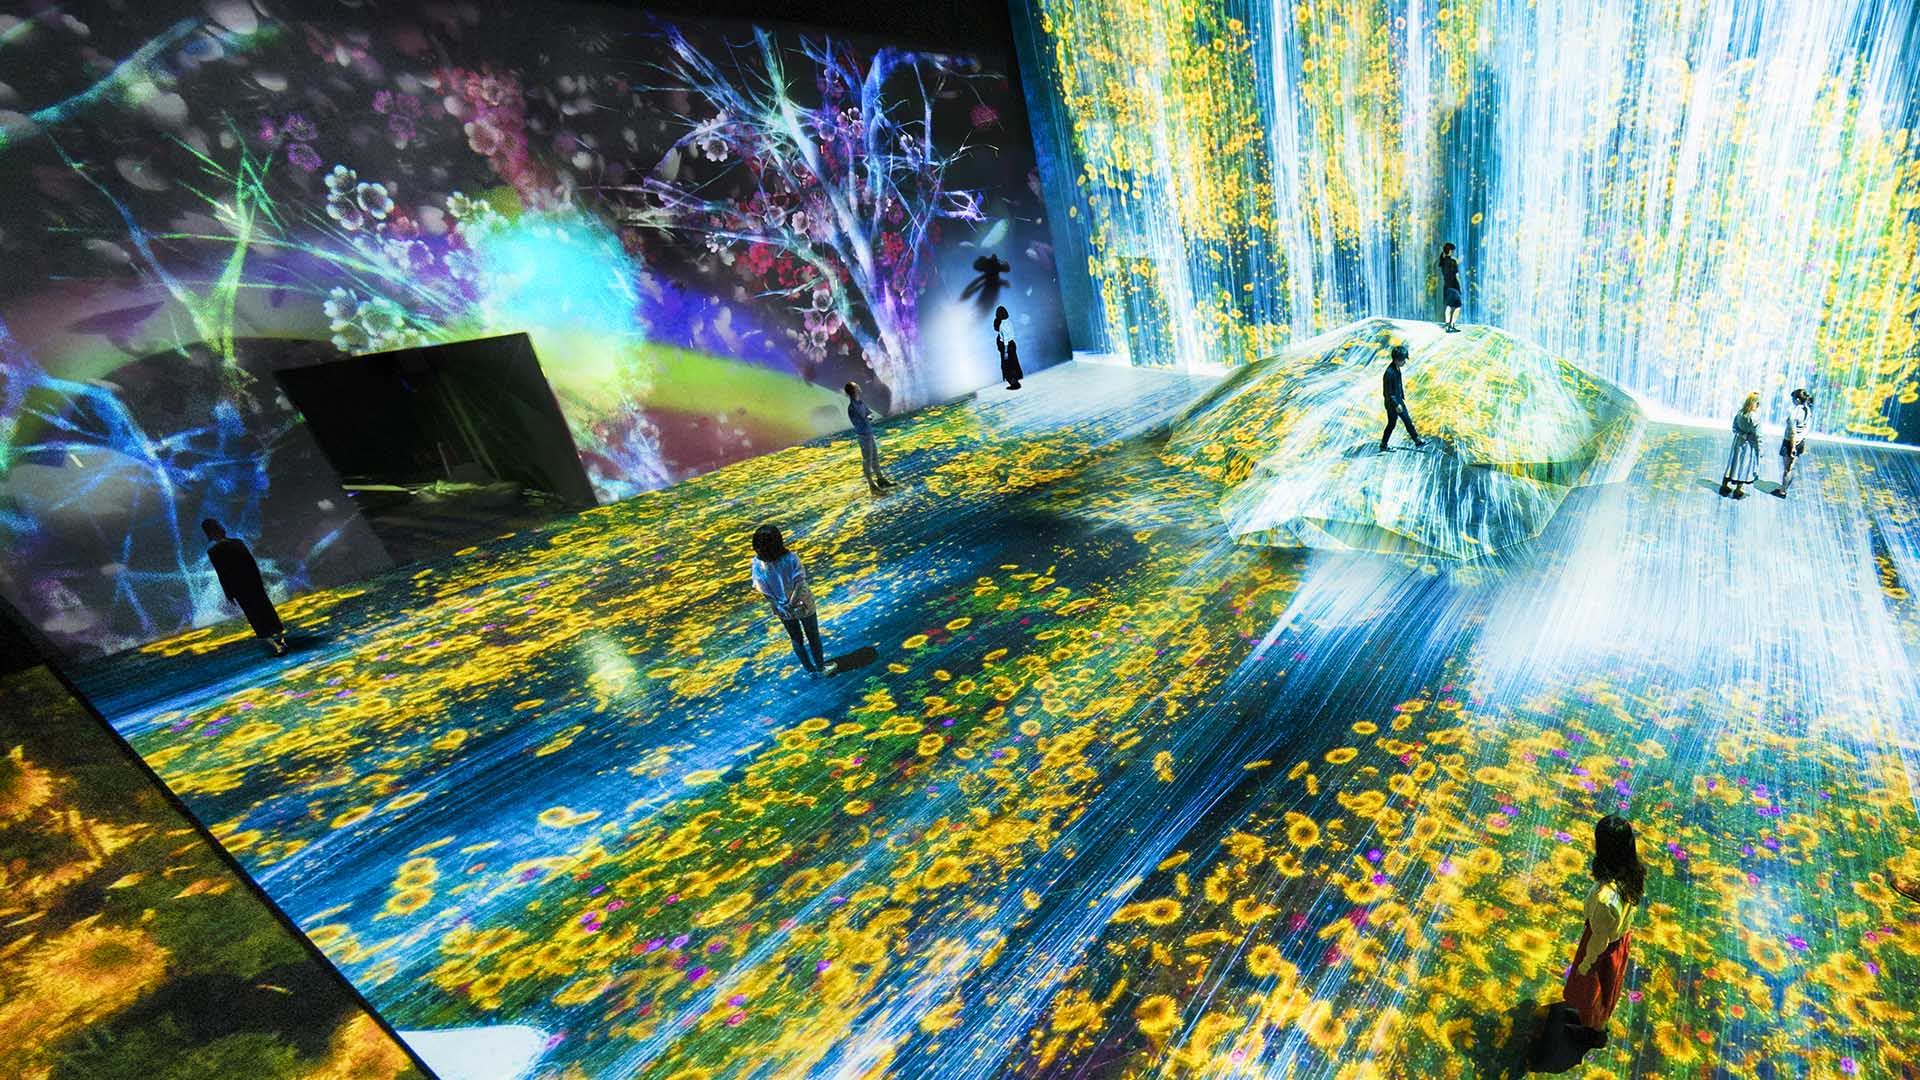 Japan's Luminous Digital-Only Art Gallery Is Now the World's Most Visited Single-Artist Museum